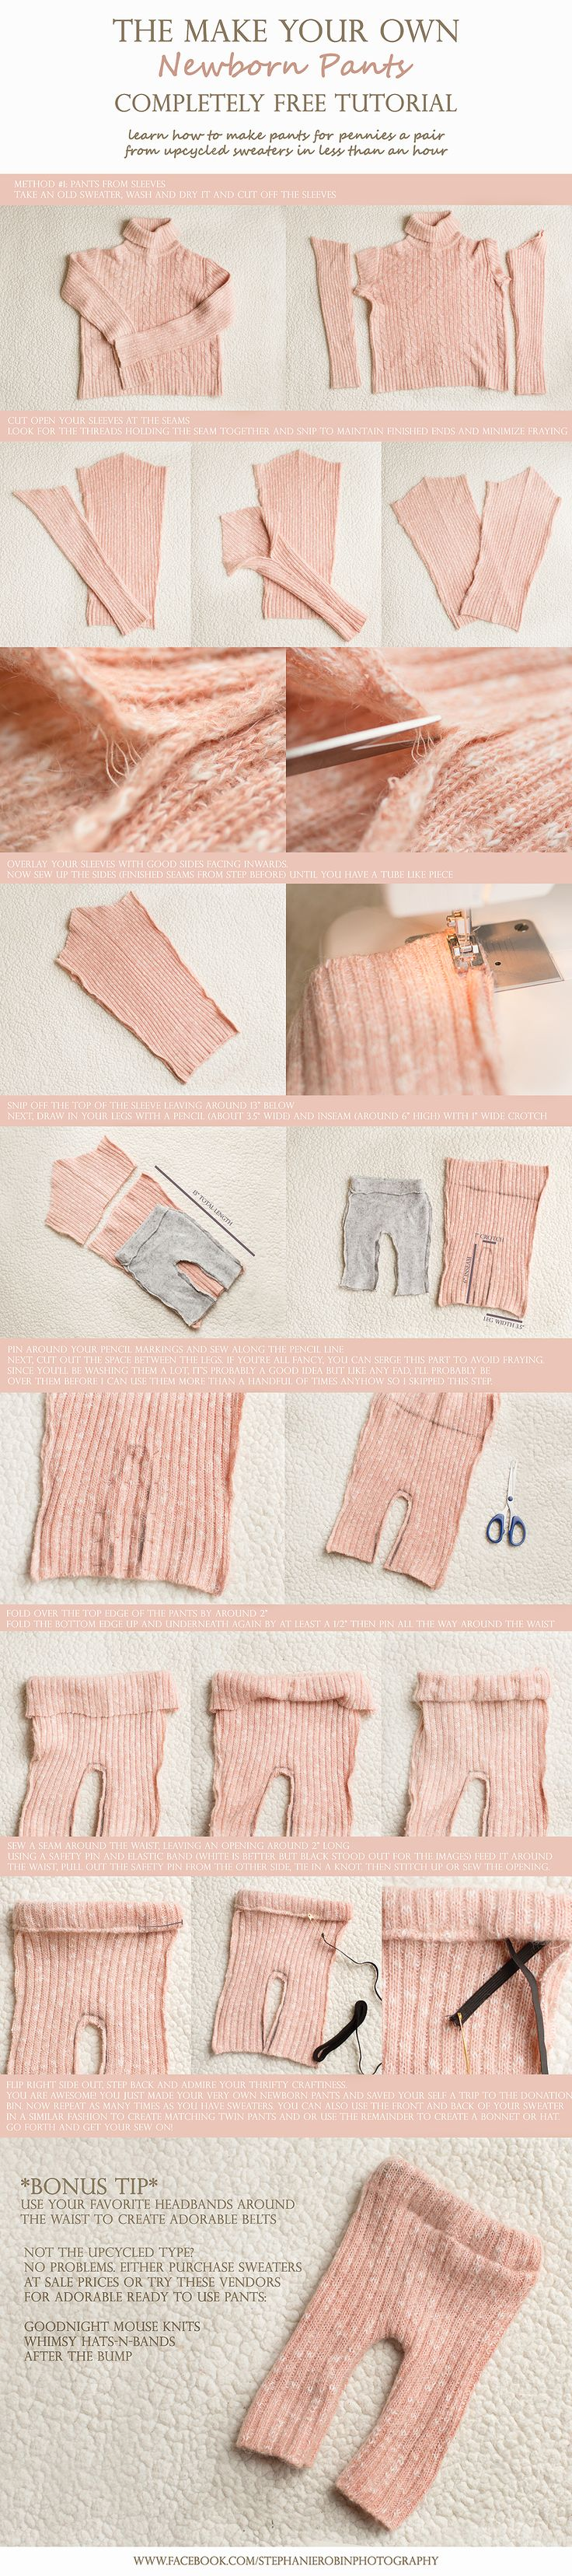 Newborn pants tutorial - not like I'm going to do this. I have no clue how to sew. LOL!